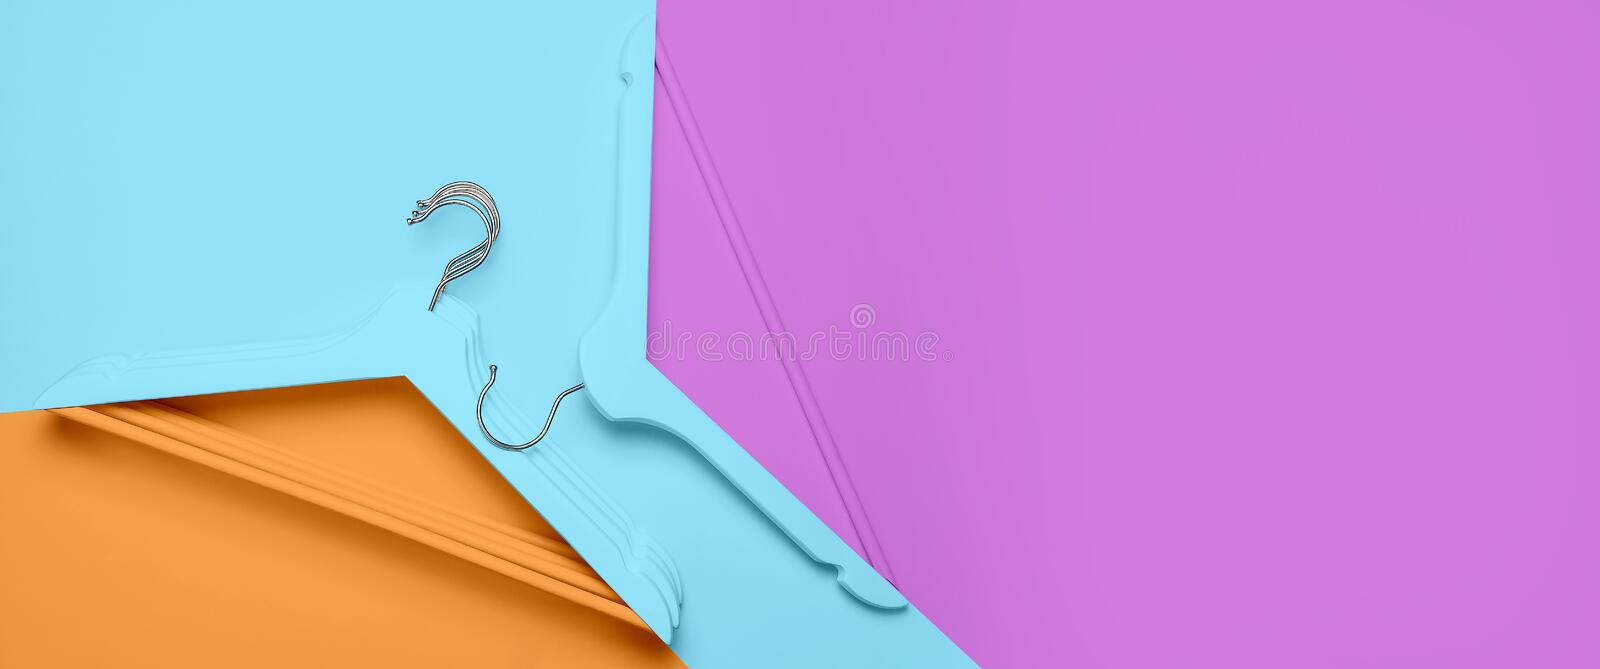 Creative fashion concept. Flat lay top view colored wooden hangers on blue pink orange neon background minimalism style. Pop-art. Sale discount store shopping royalty free stock image